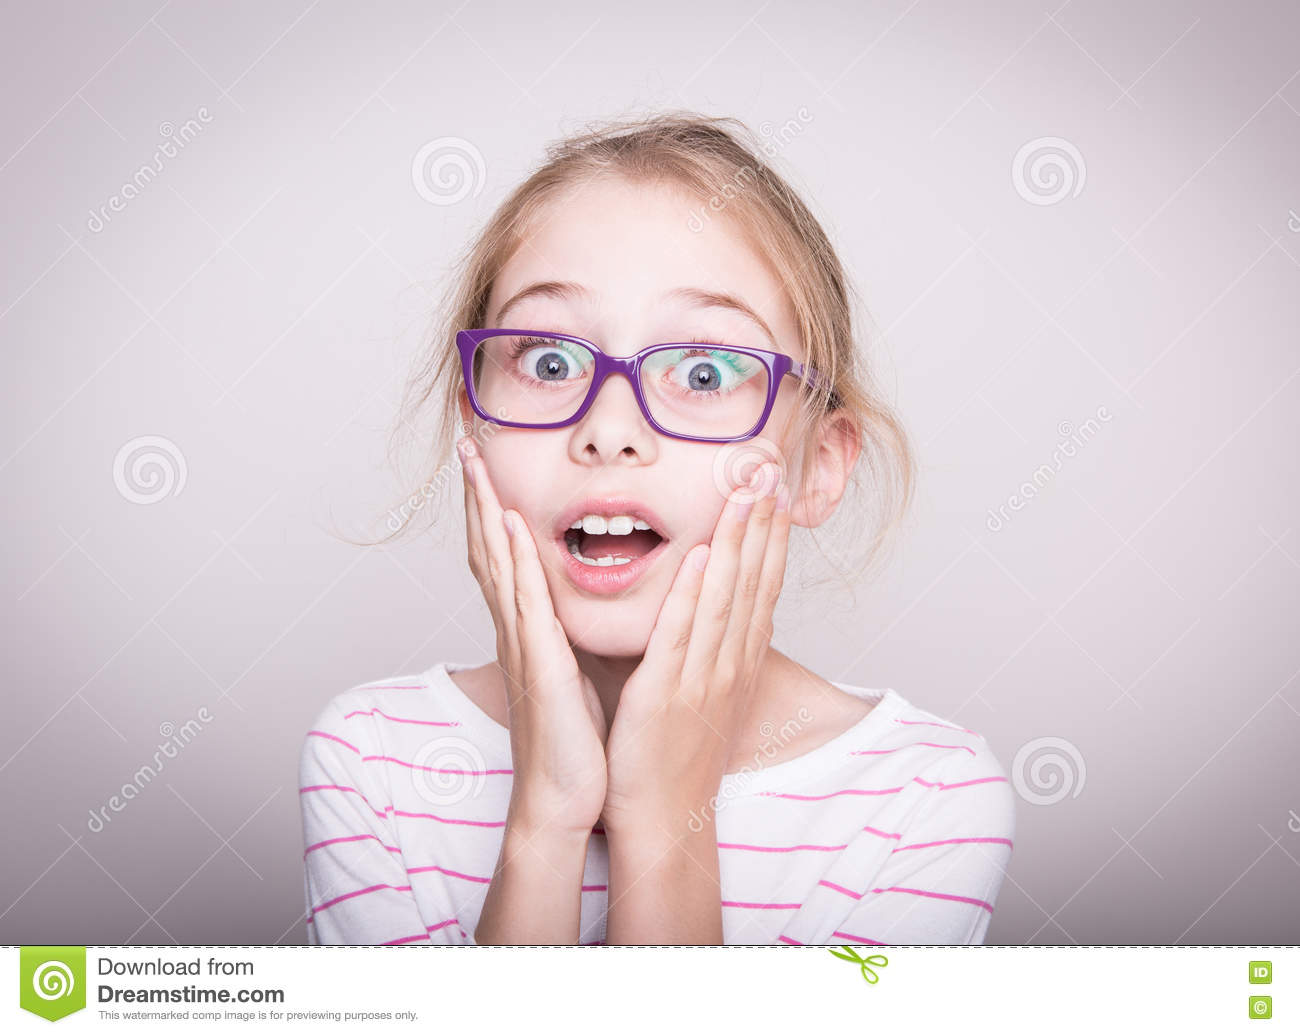 Download Surprised Or Shocked Face Of Child Girl In Violet Glasses Stock Image - Image of enthusiasm, face: 74328119